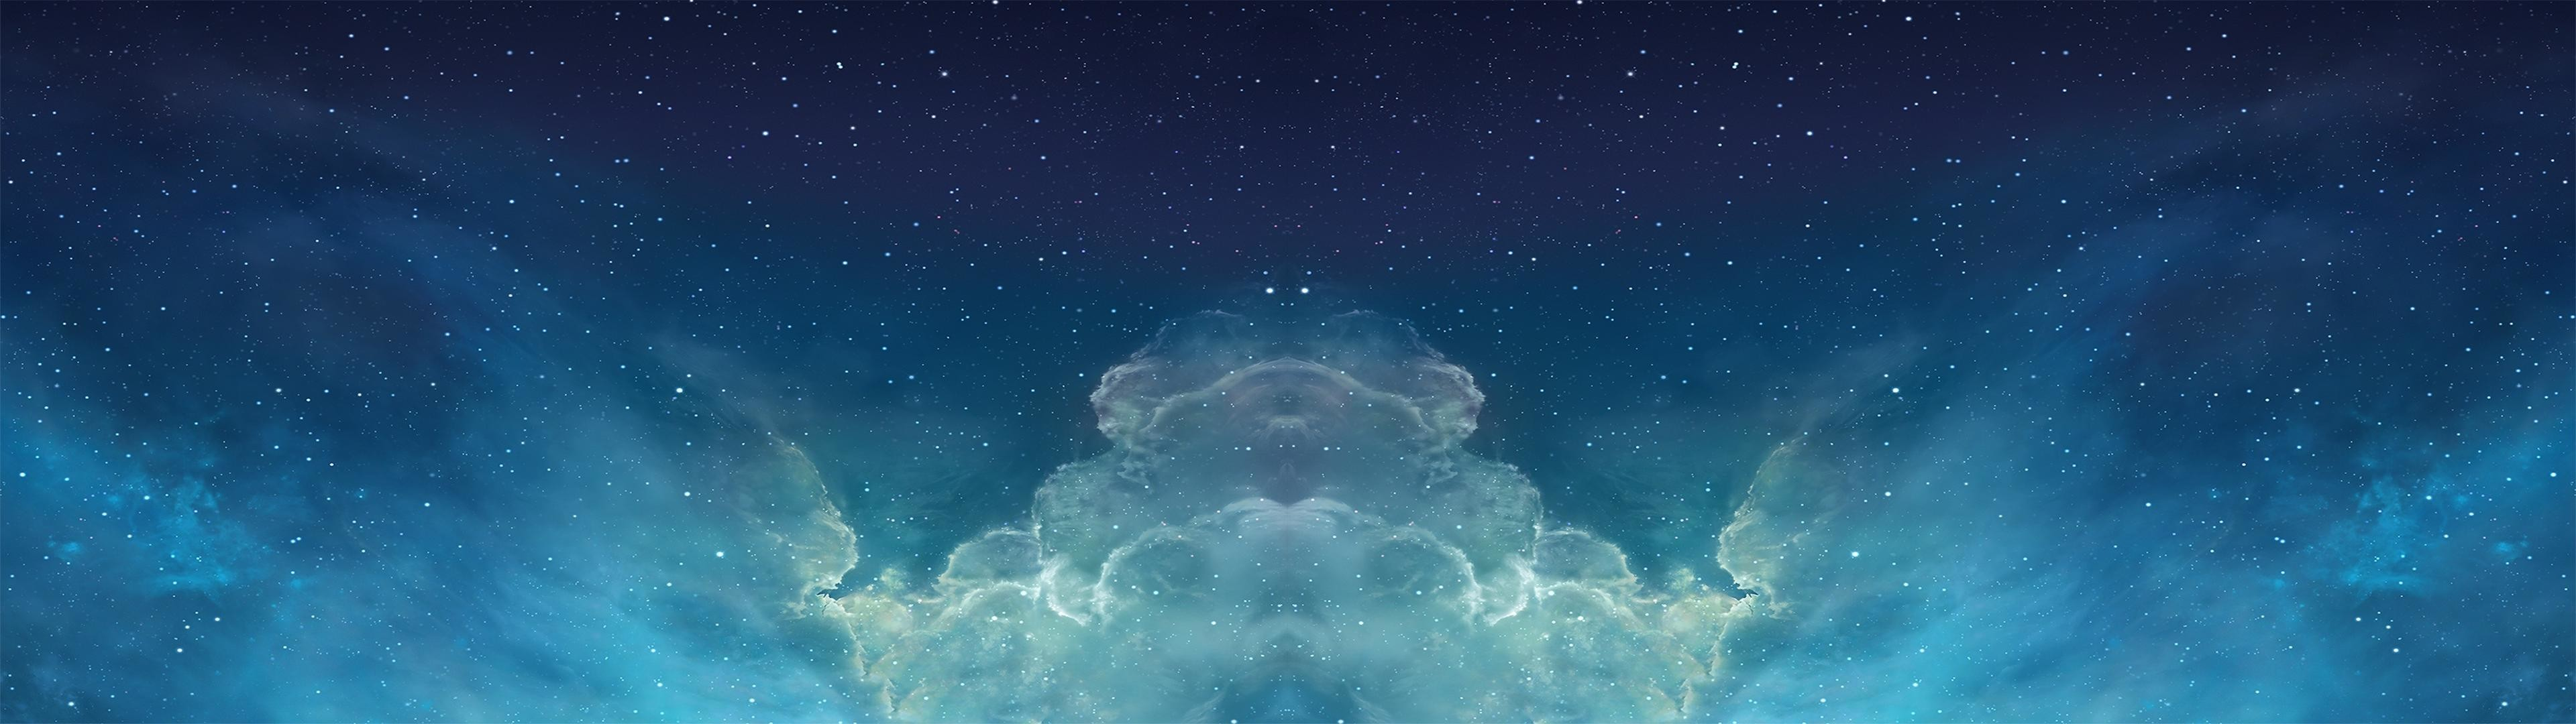 3840x1080 Found this wallpaper, made it dual screen - Starblazer cloud skies [ 3840 x  1080 ]Dual ...